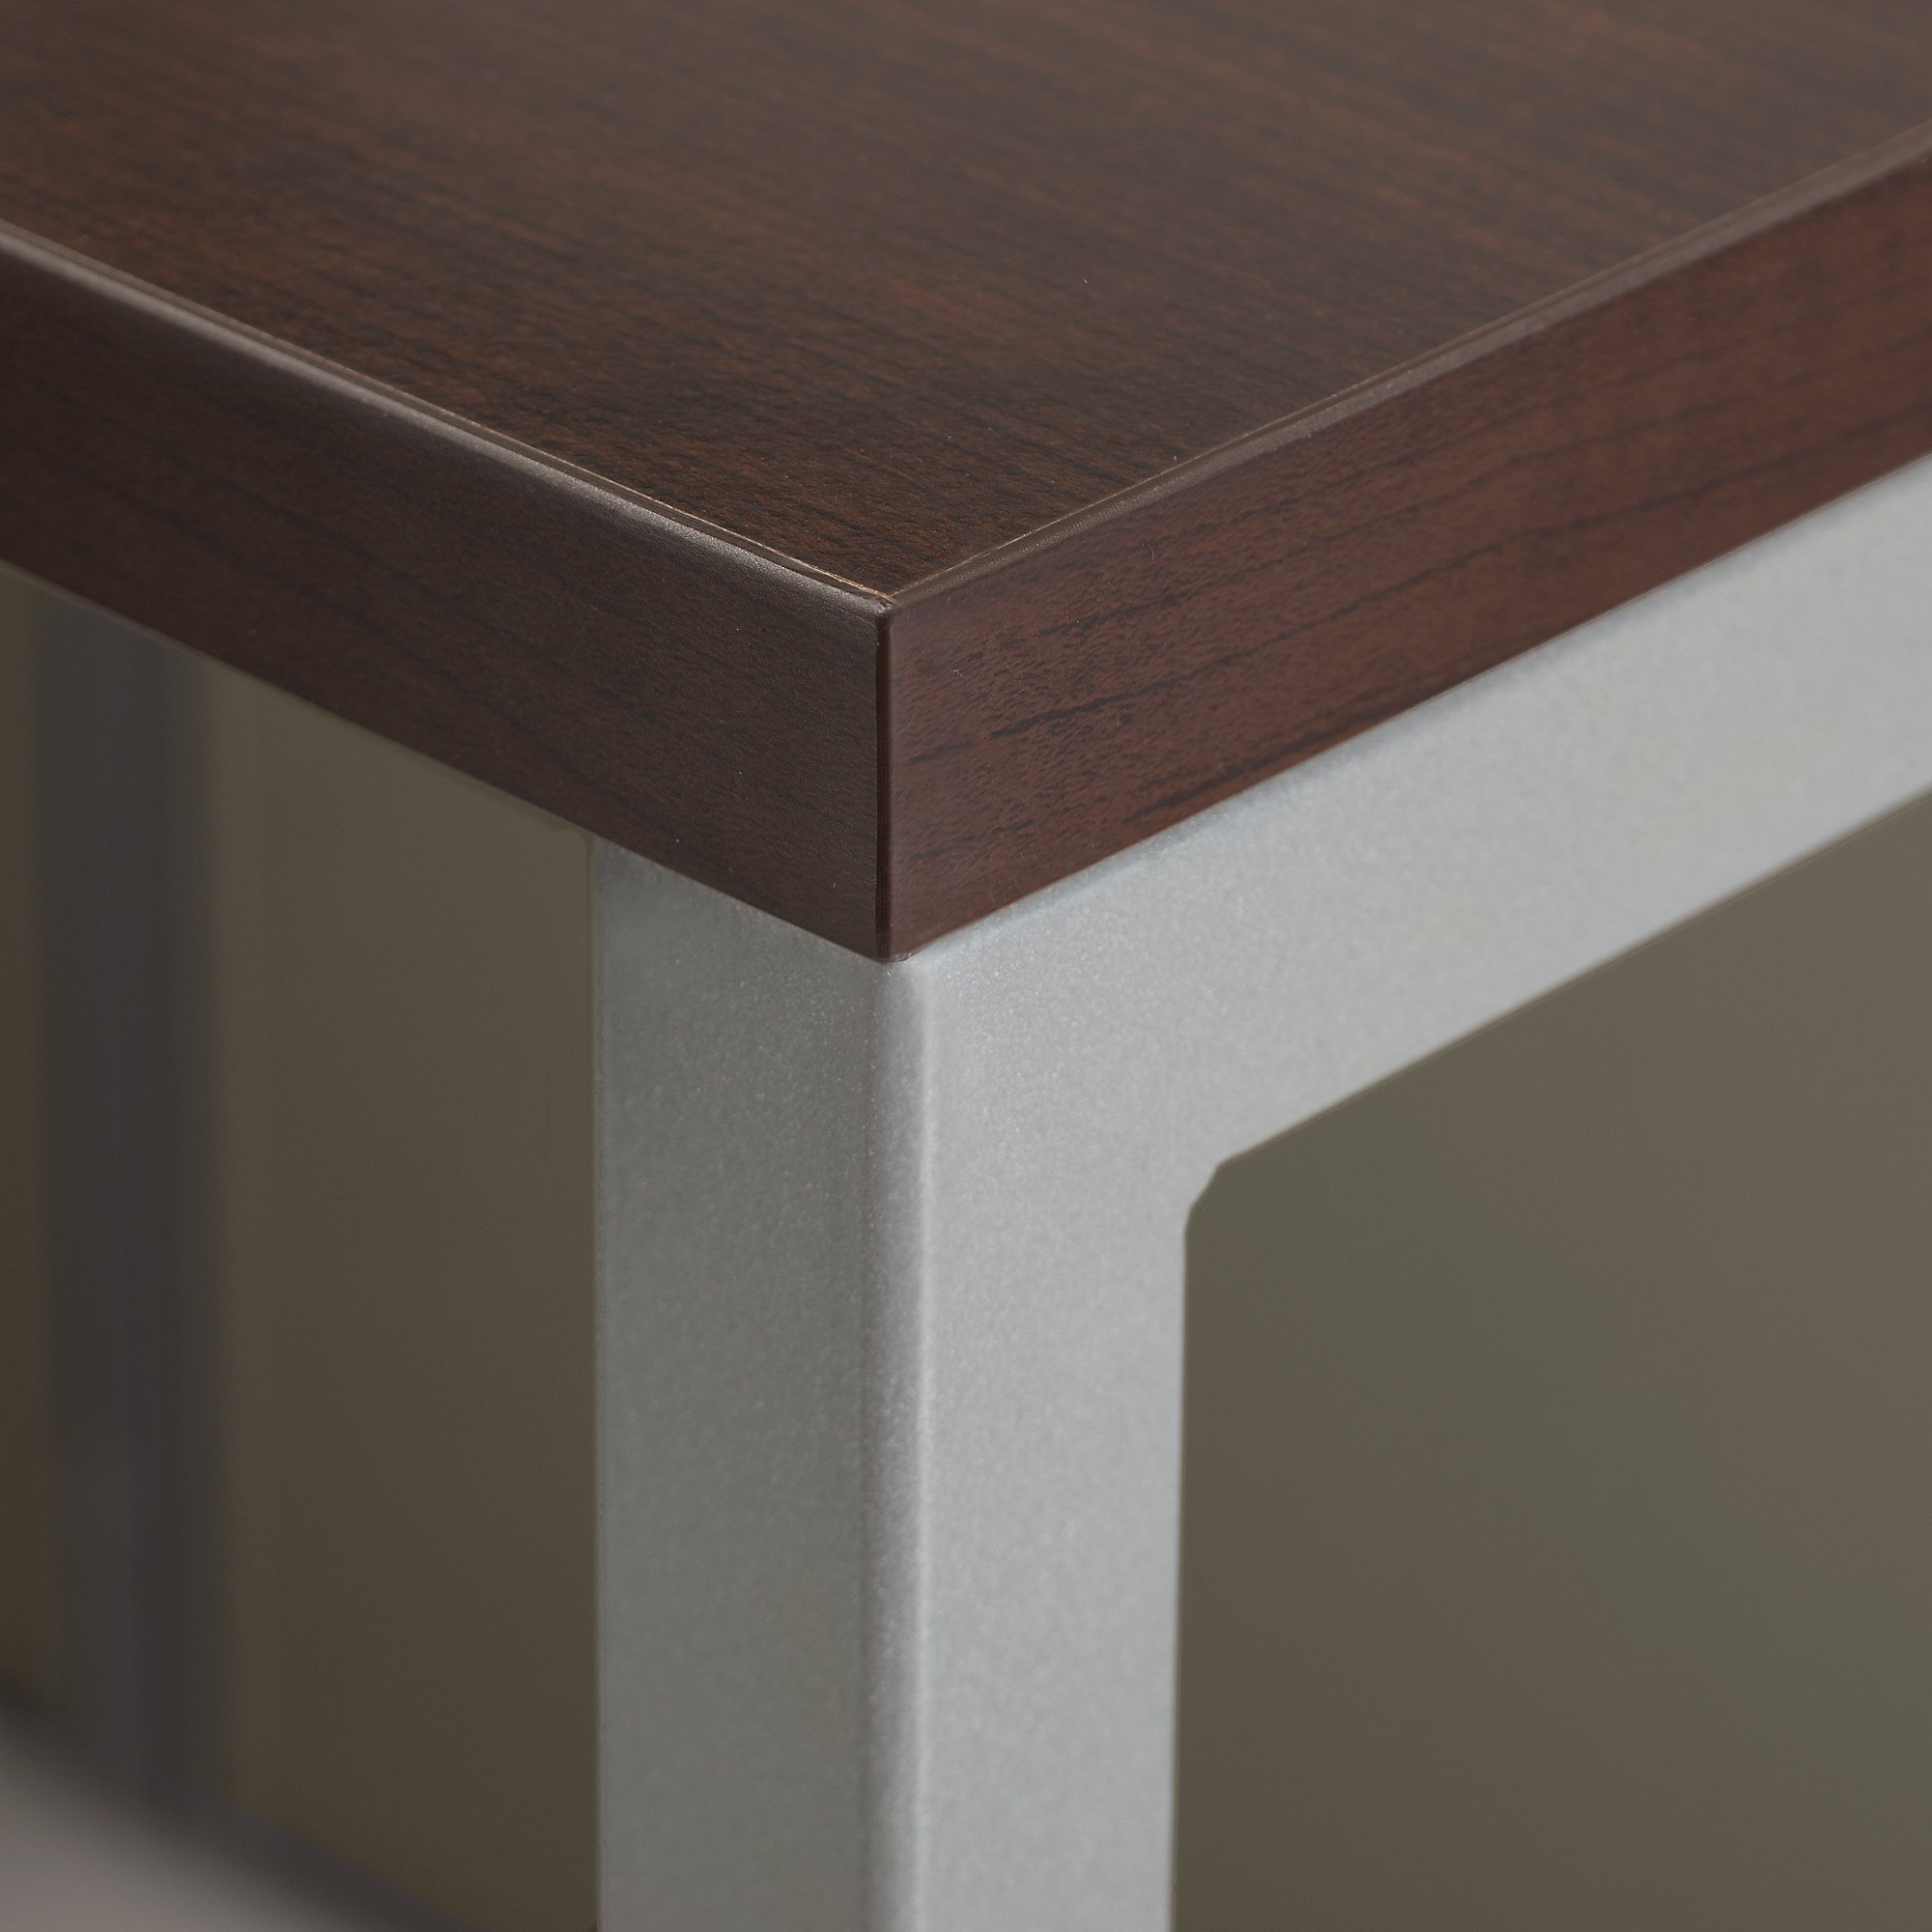 mocha cherry surface with metal frame